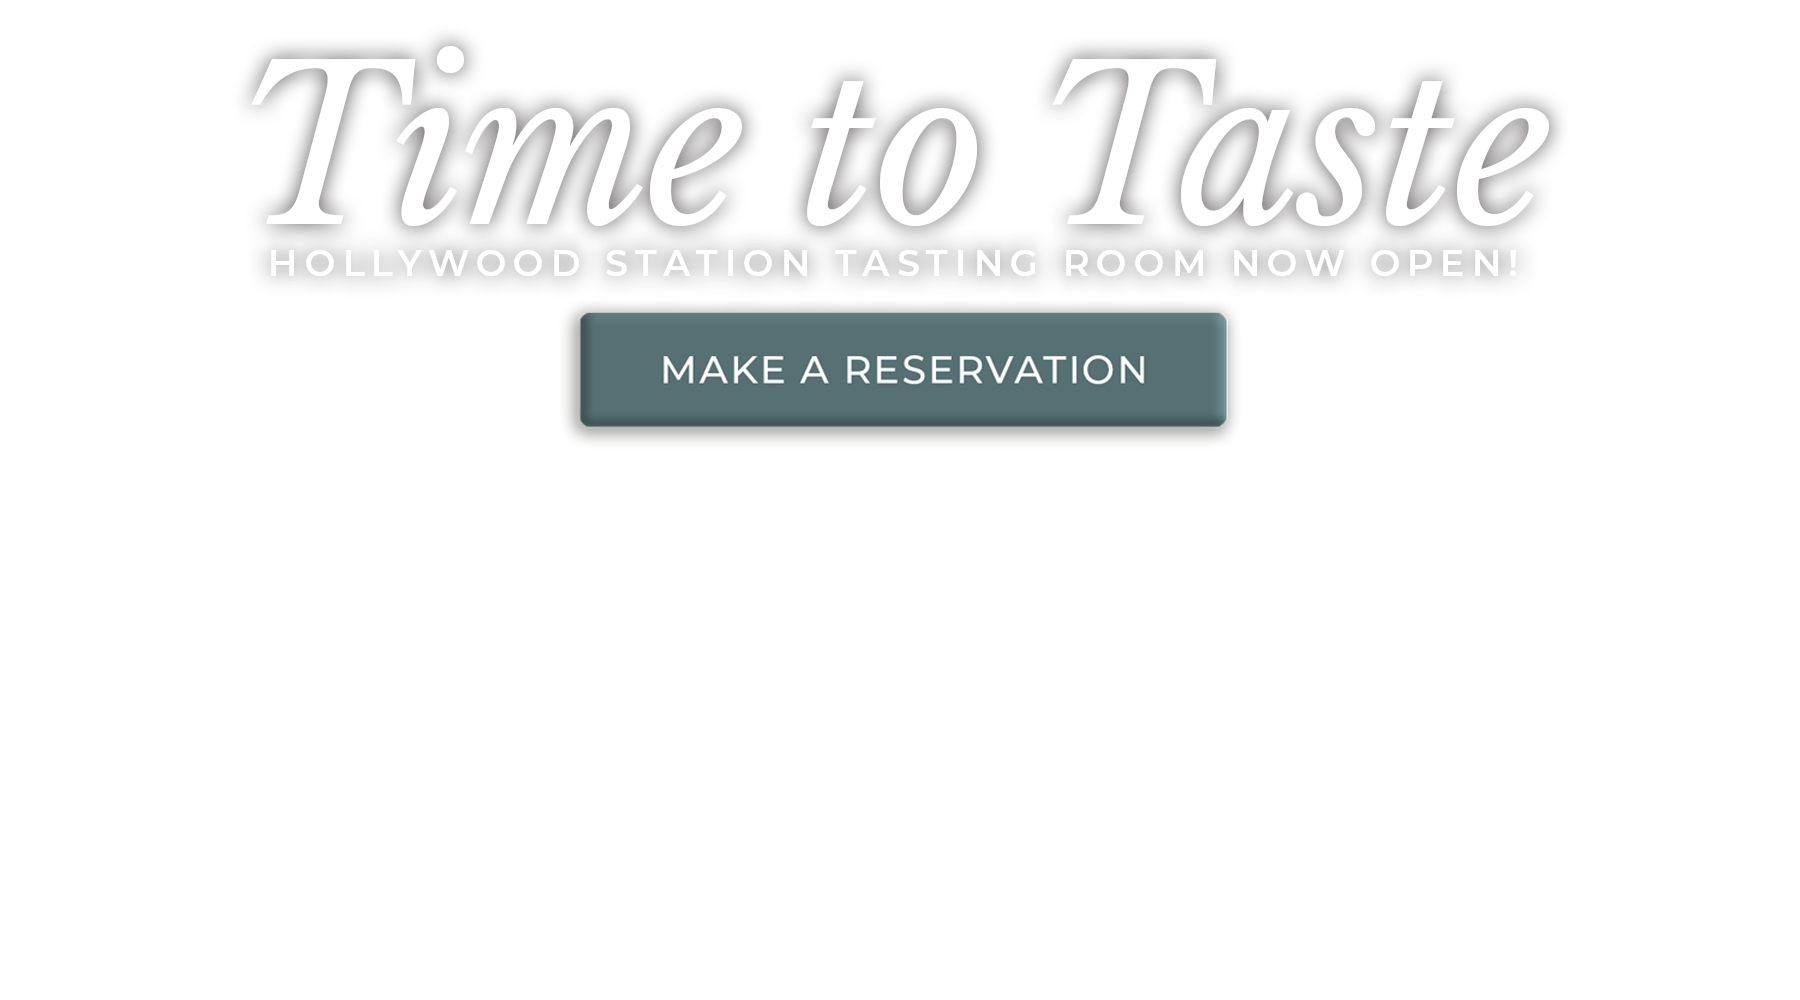 Time to Taste- Hollywood Station tasting room now open. Make a Reservation